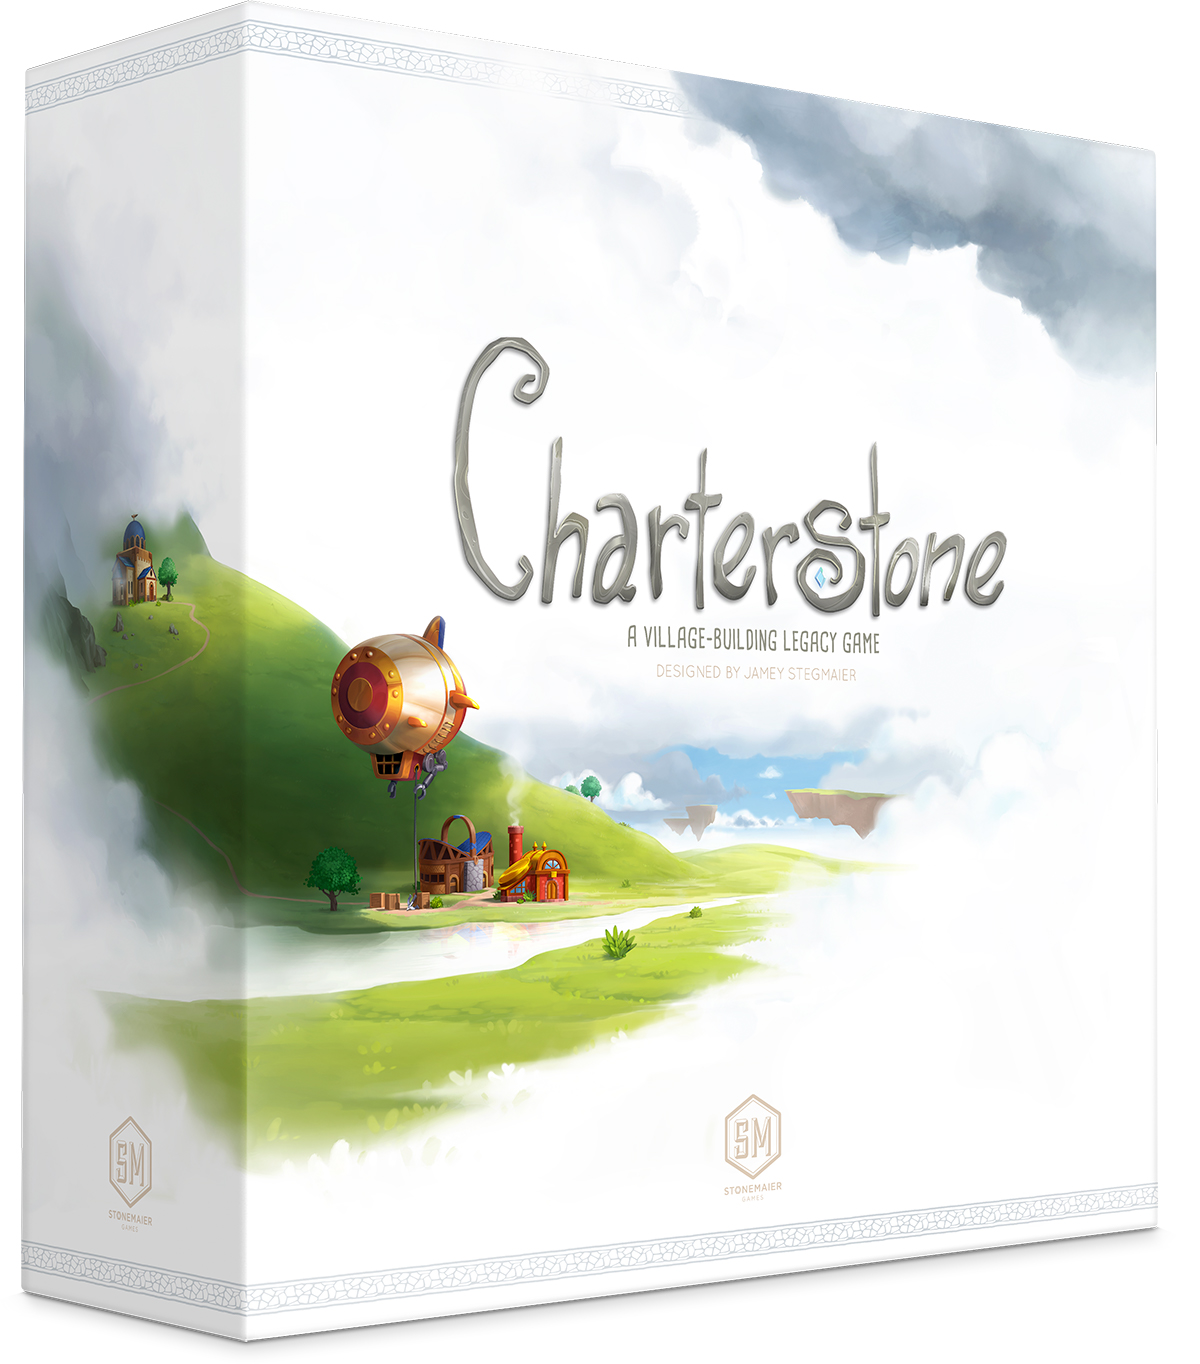 The box for Charterstone game